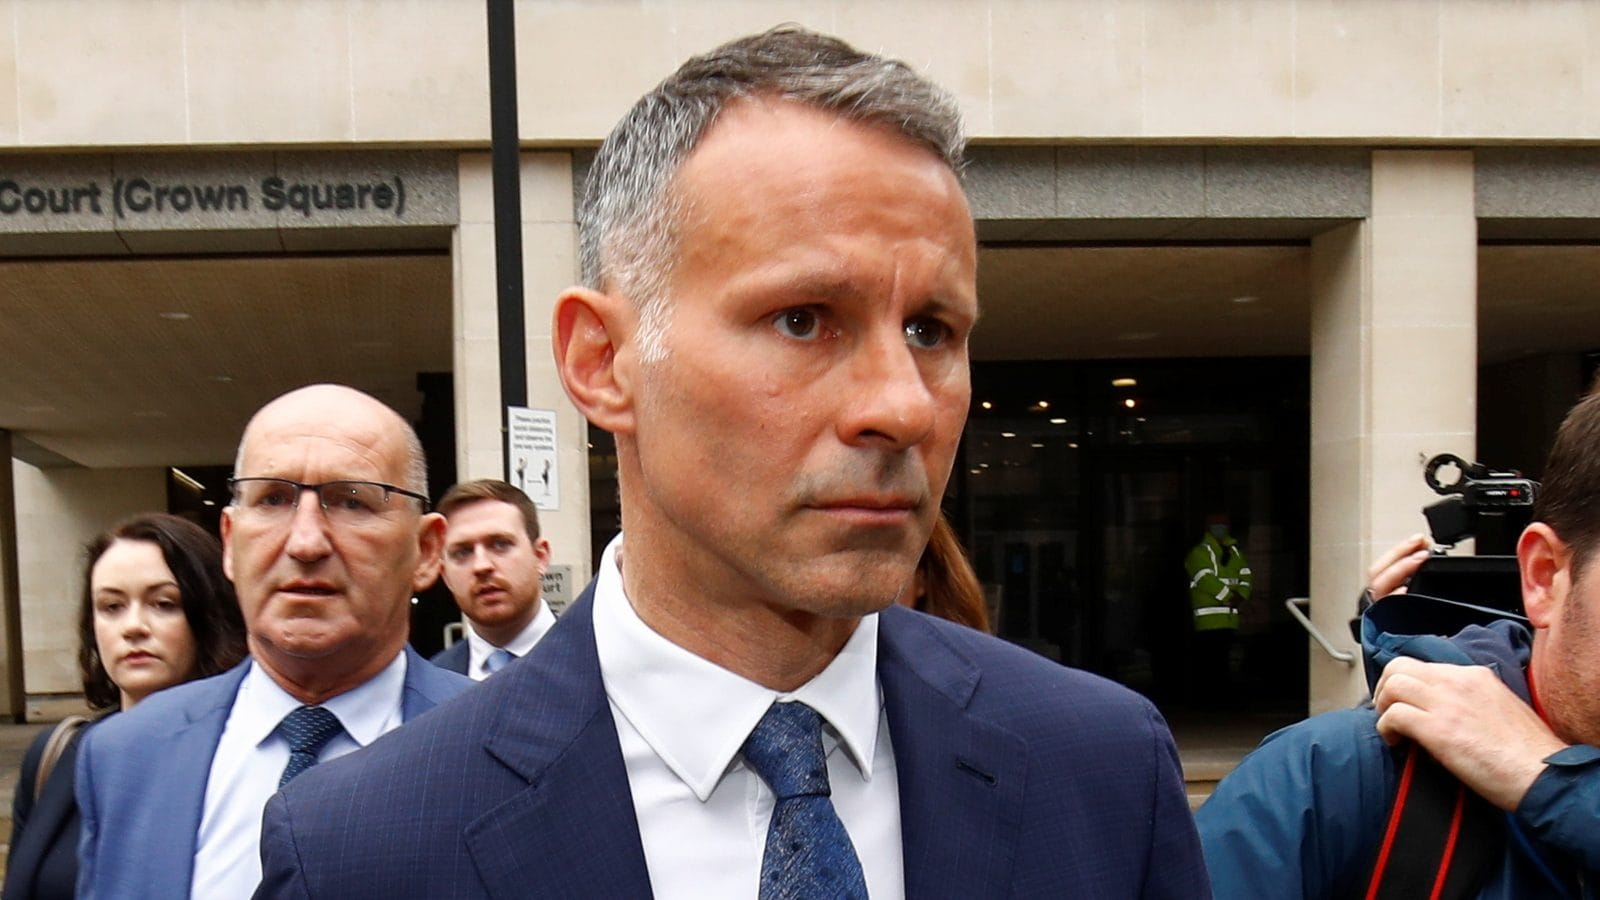 Ex-Manchester United Star Ryan Giggs Pleads Not Guilty to Assault in Court Hearing